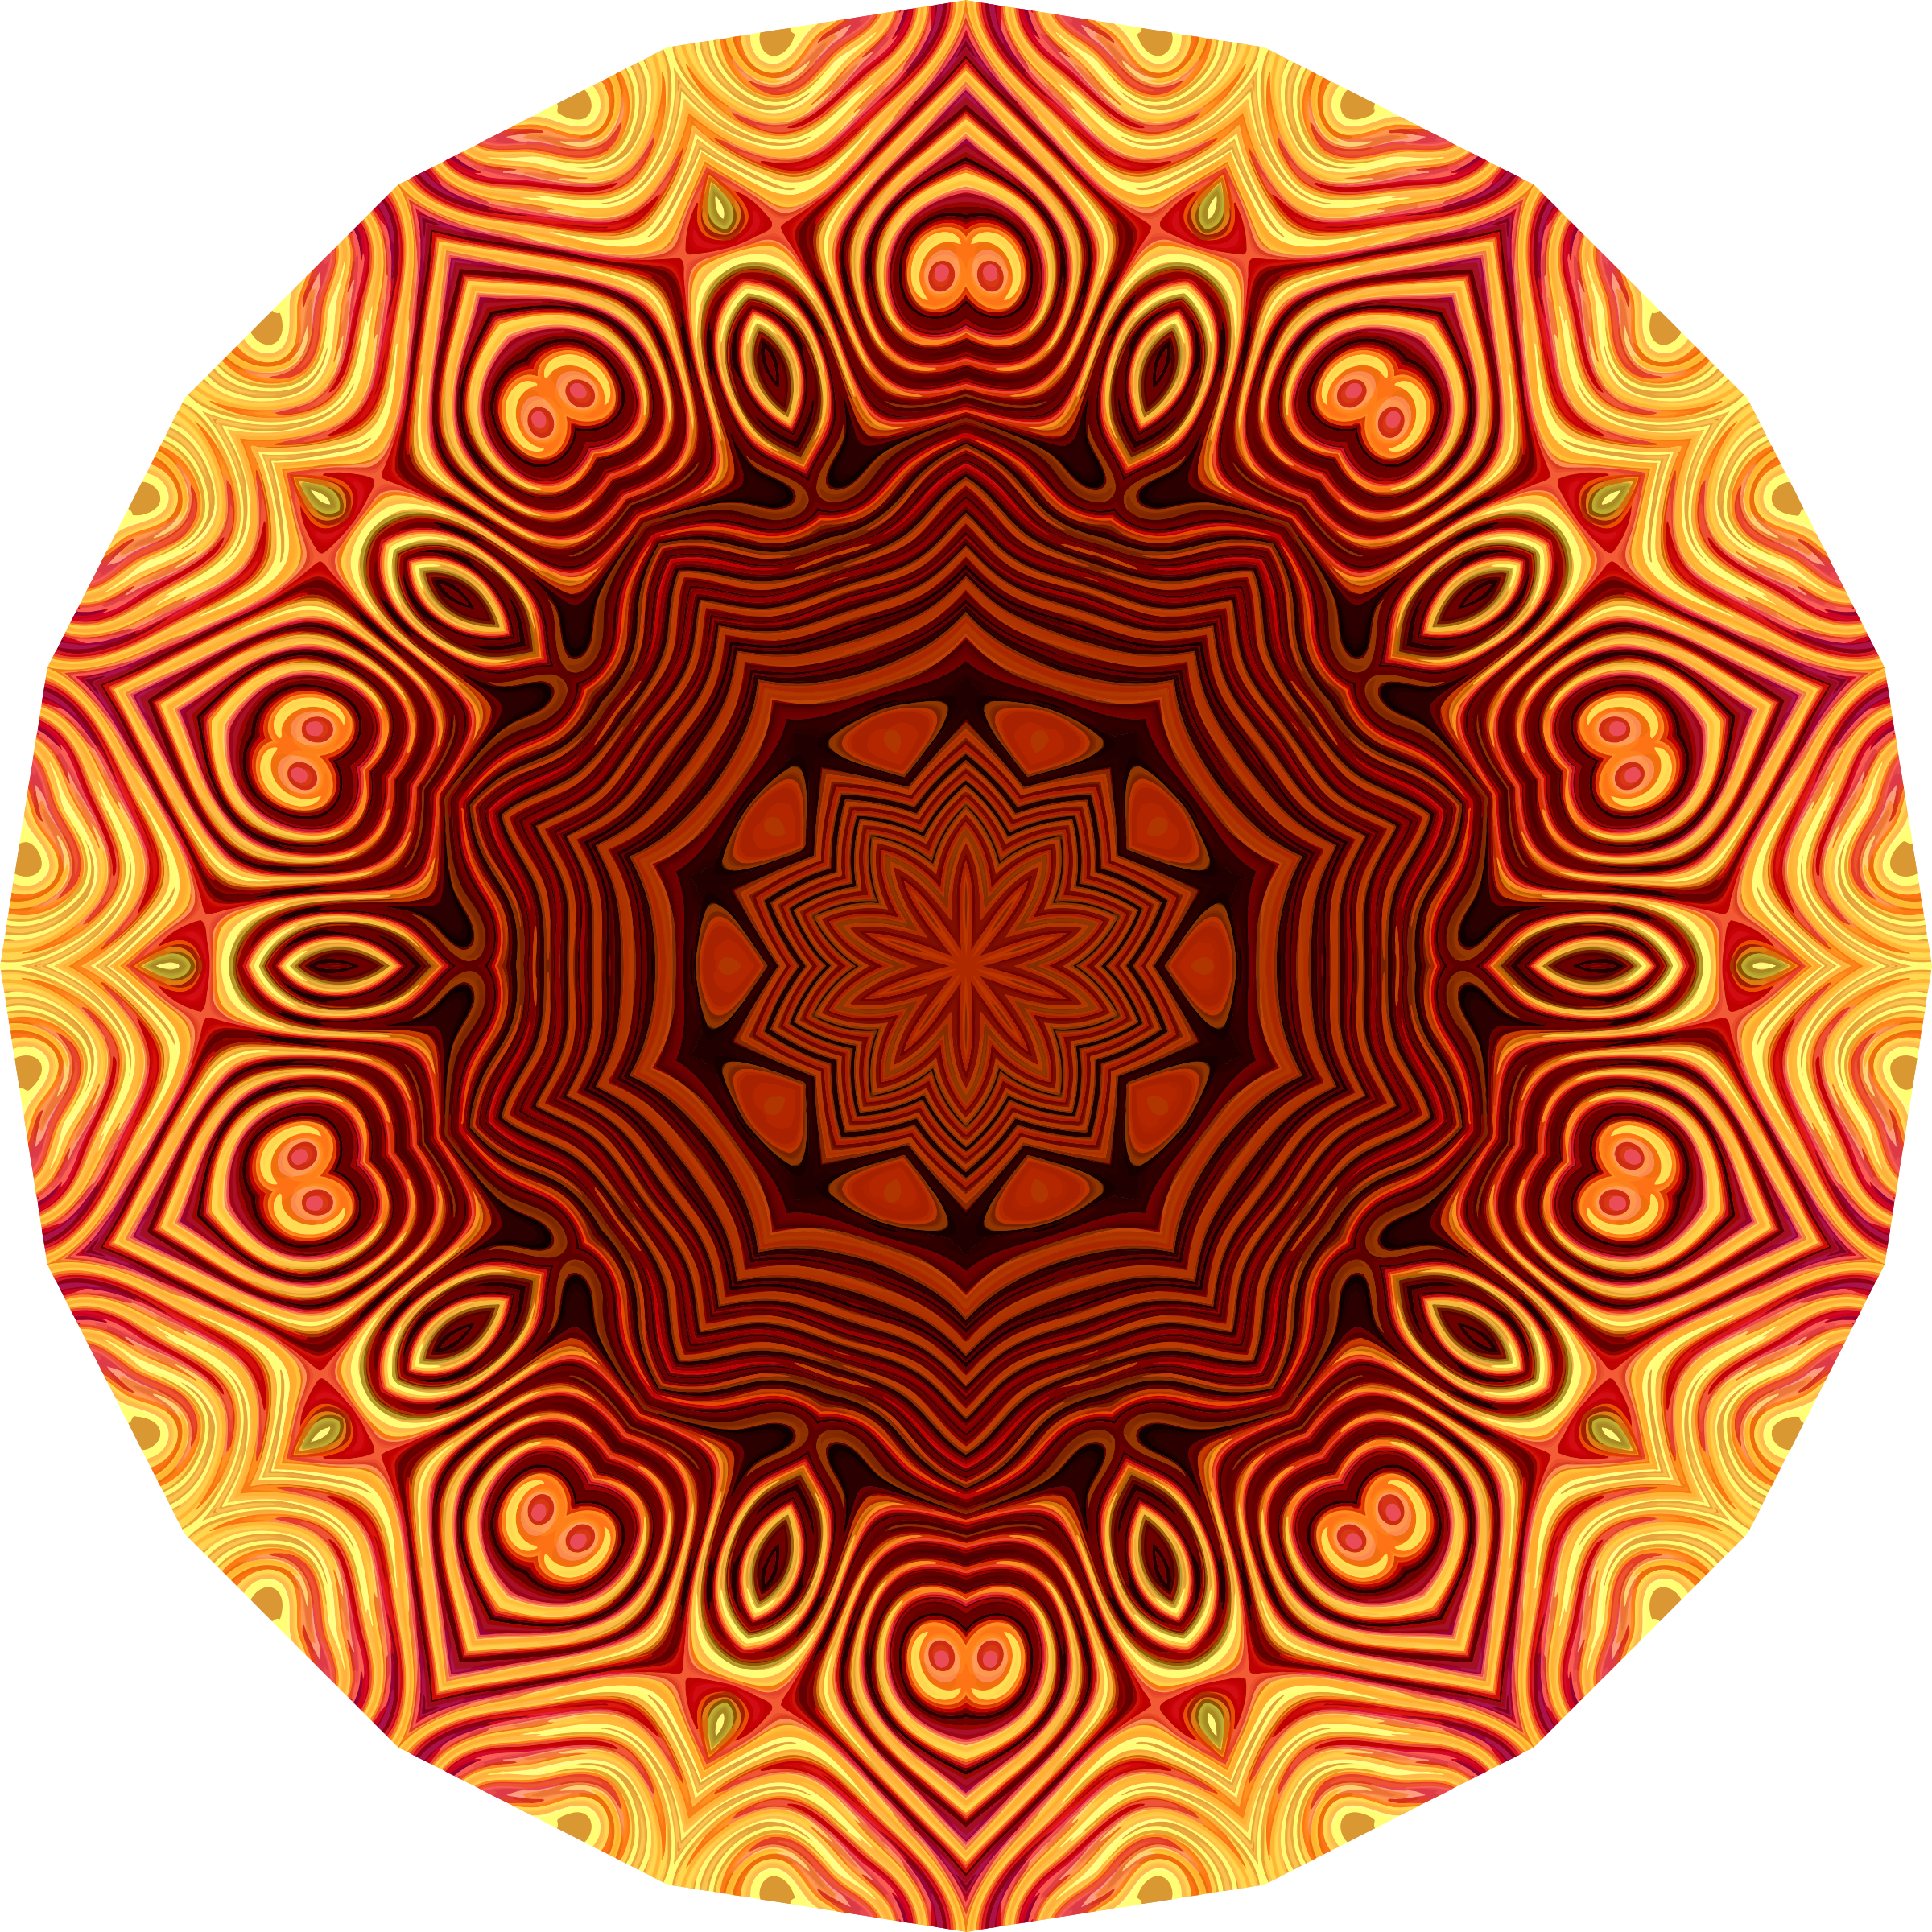 Mandala 20 by Firkin